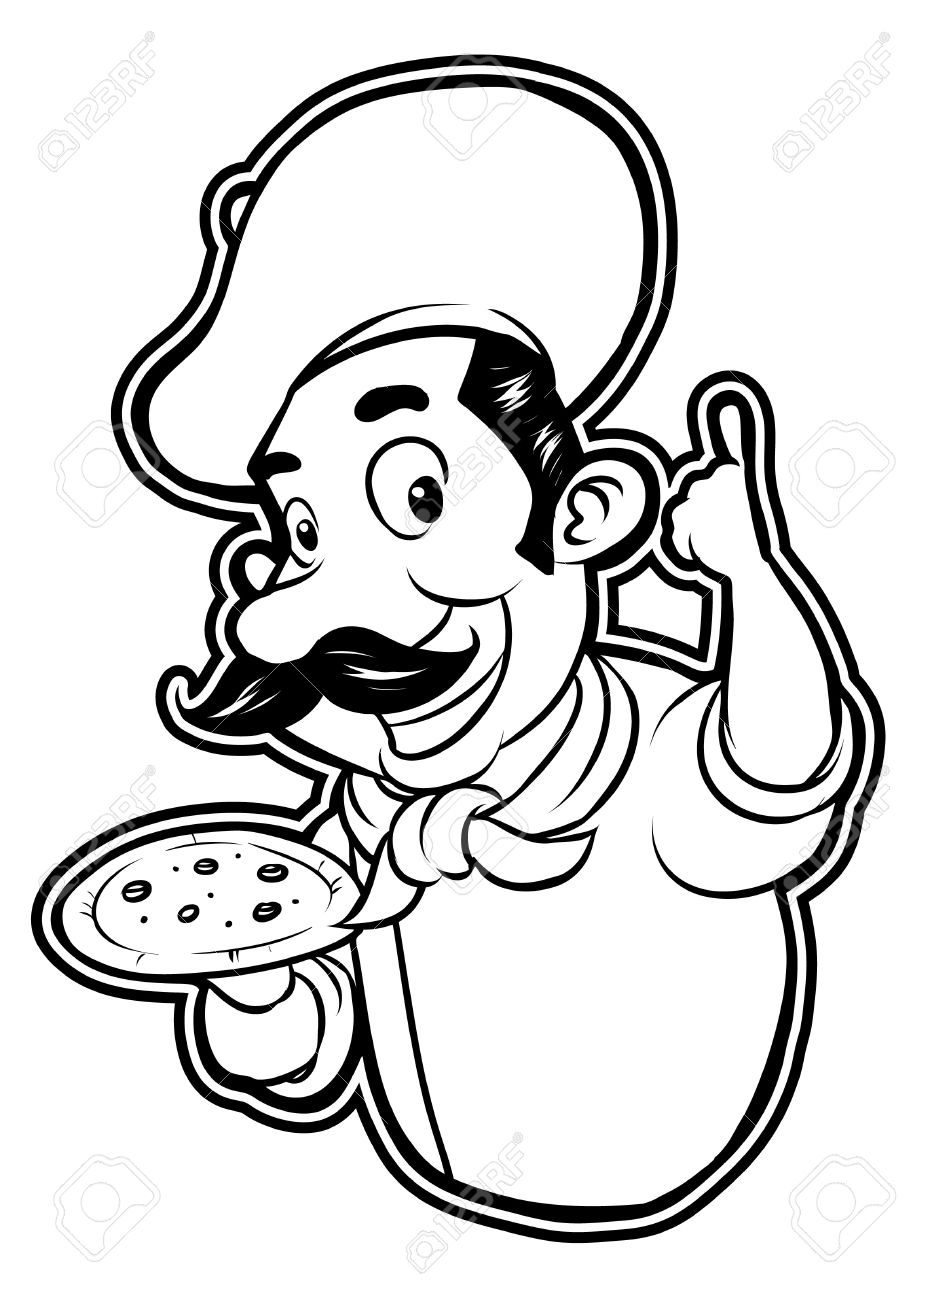 930x1300 Black And White Clipart Pizza Chef Royalty Free Cliparts, Vectors